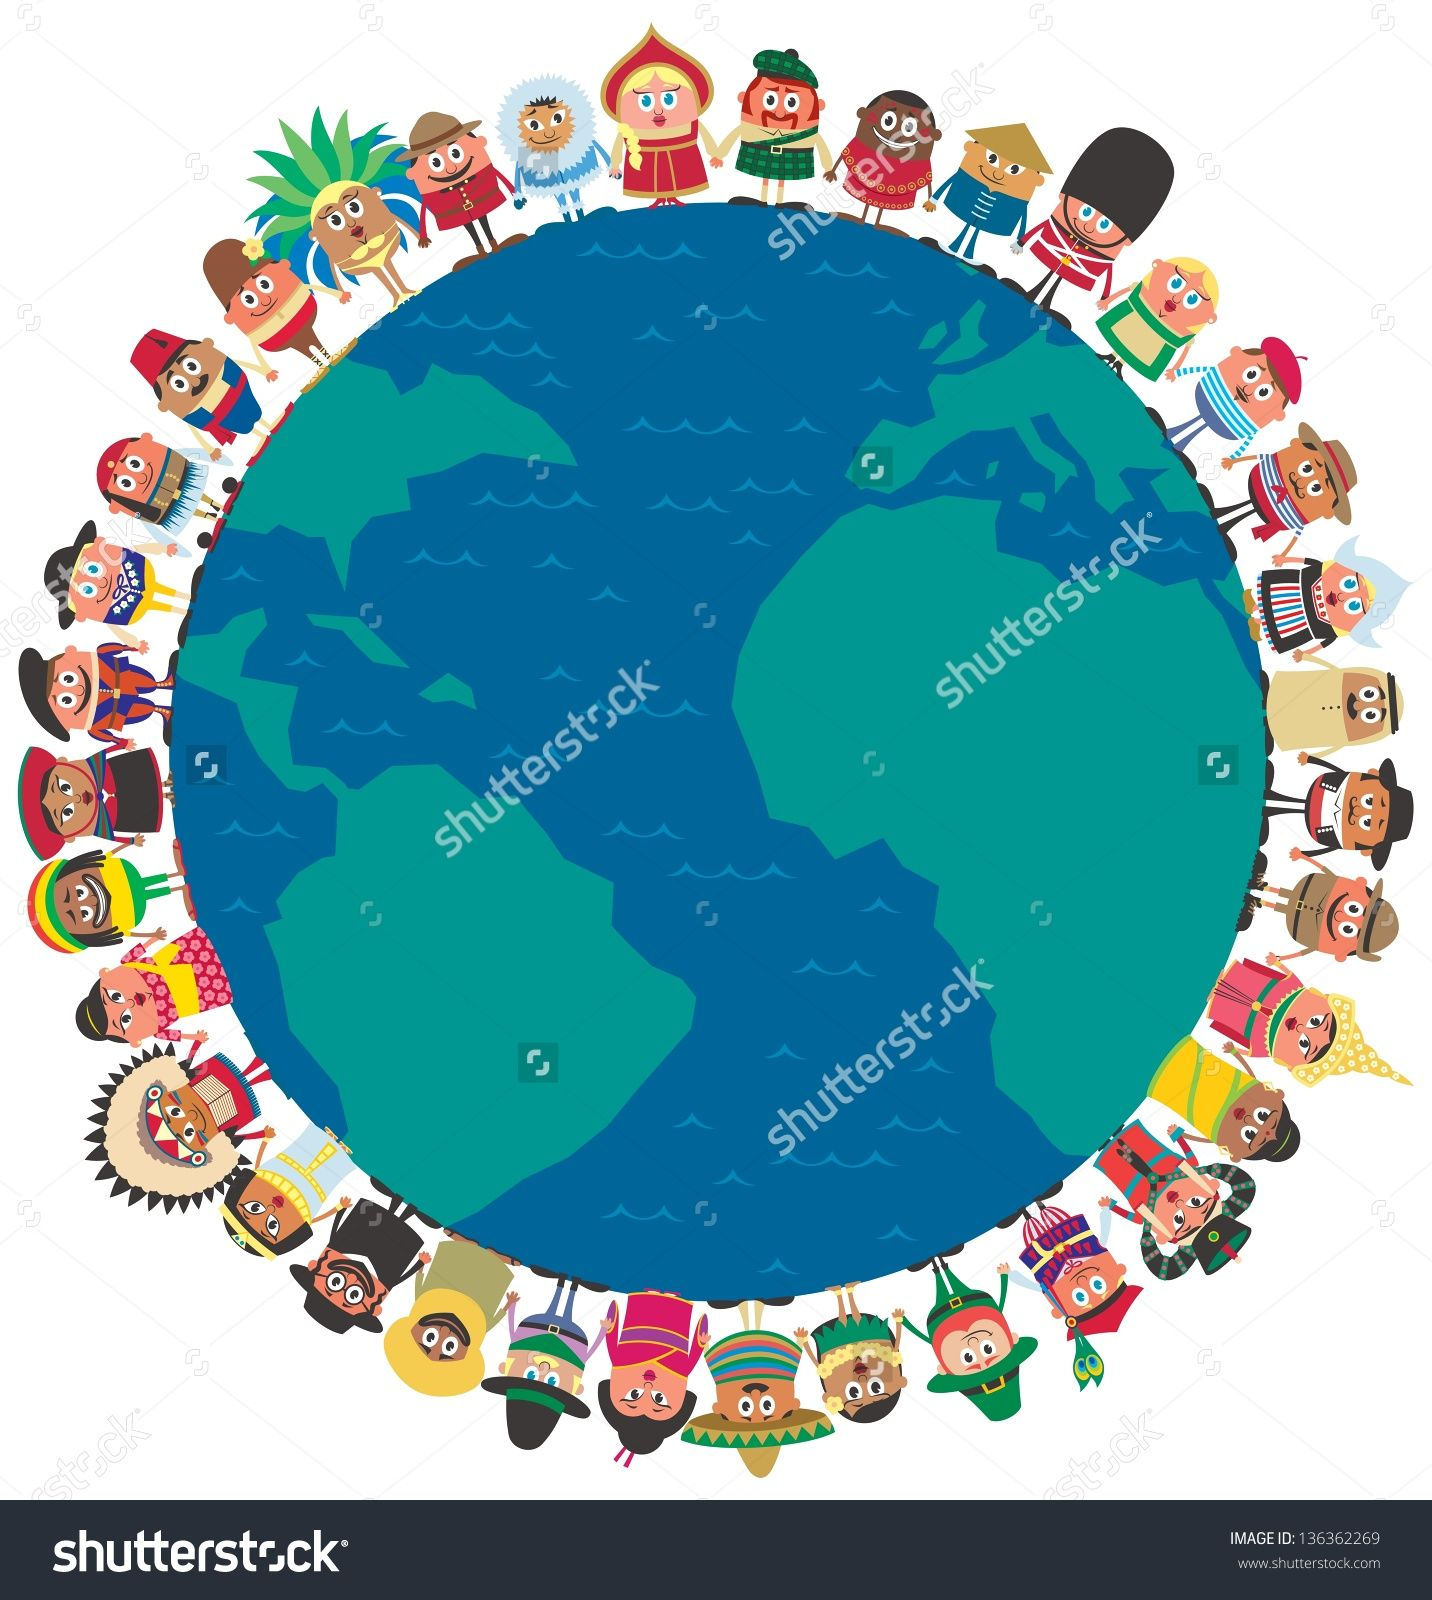 Around the world stock vectors vector clip art shutterstock unity people from around the world holding hands as a symbol of unity no transparency and gradients used ai cdr eps jpeg and psd files buycottarizona Gallery